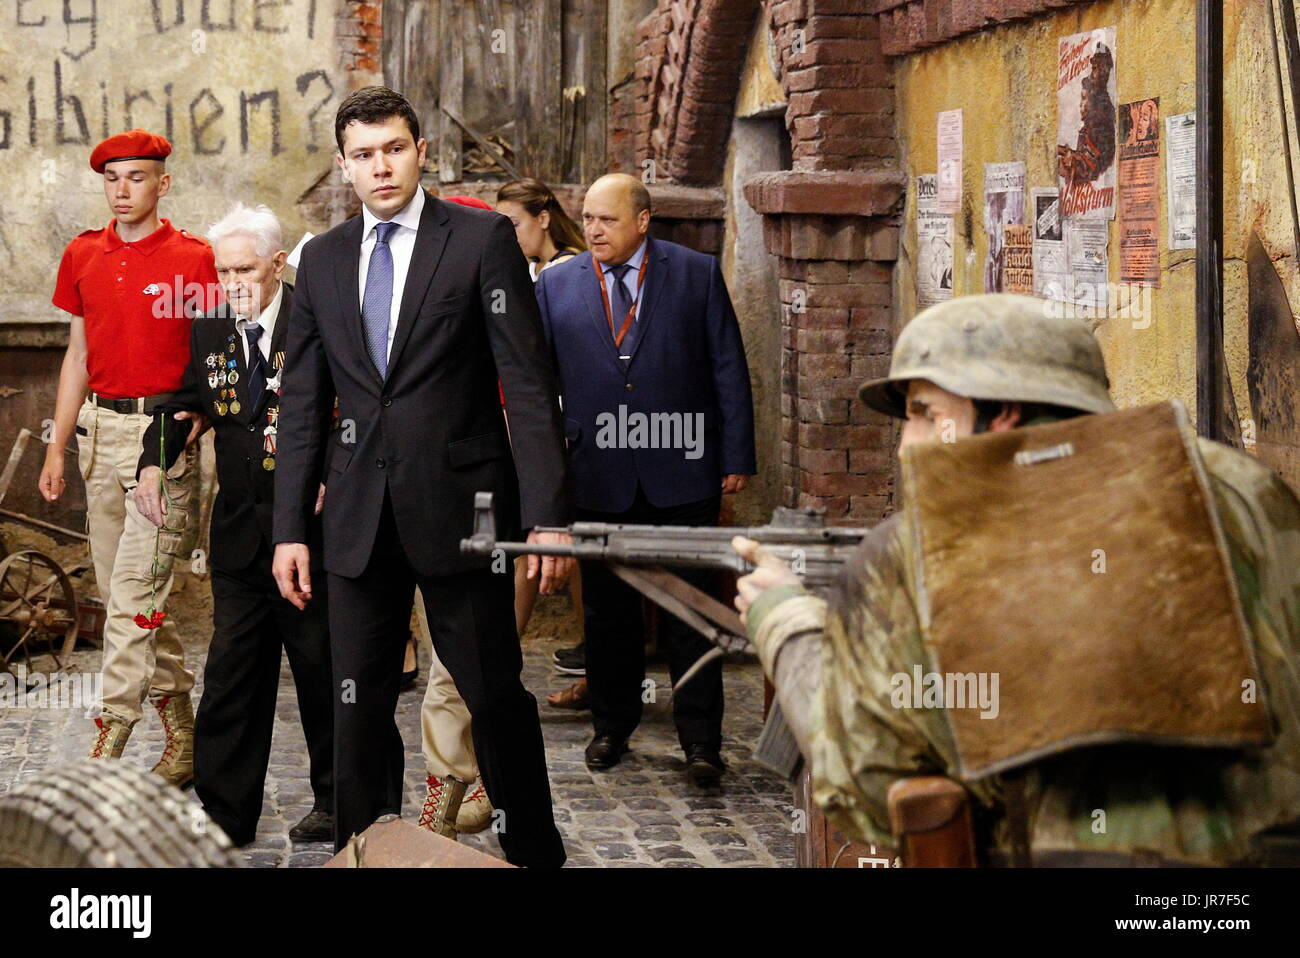 Kaliningrad Region, Russia. 3rd Aug, 2017. War veteran Ivan Tikhonov (2nd L) who took part in the final assault on Konigsberg in 1945, and the acting governor of Kaliningrad Region, Anton Alikhanov (3rd L), view a 3-dimensional panoramic exhibition titled 'Konigsberg 1945: the Final Assault' at the Kaliningrad Region Museum of History and Arts; the 360-degree display, which depicts the April 1945 assault by the Red Army on the city of Konigsberg in WWII, is an artwork by the Nevsky Batalist team led by Dmitry Poshtarenko. Credit: Vitaly Nevar/TASS/Alamy Live News - Stock Image